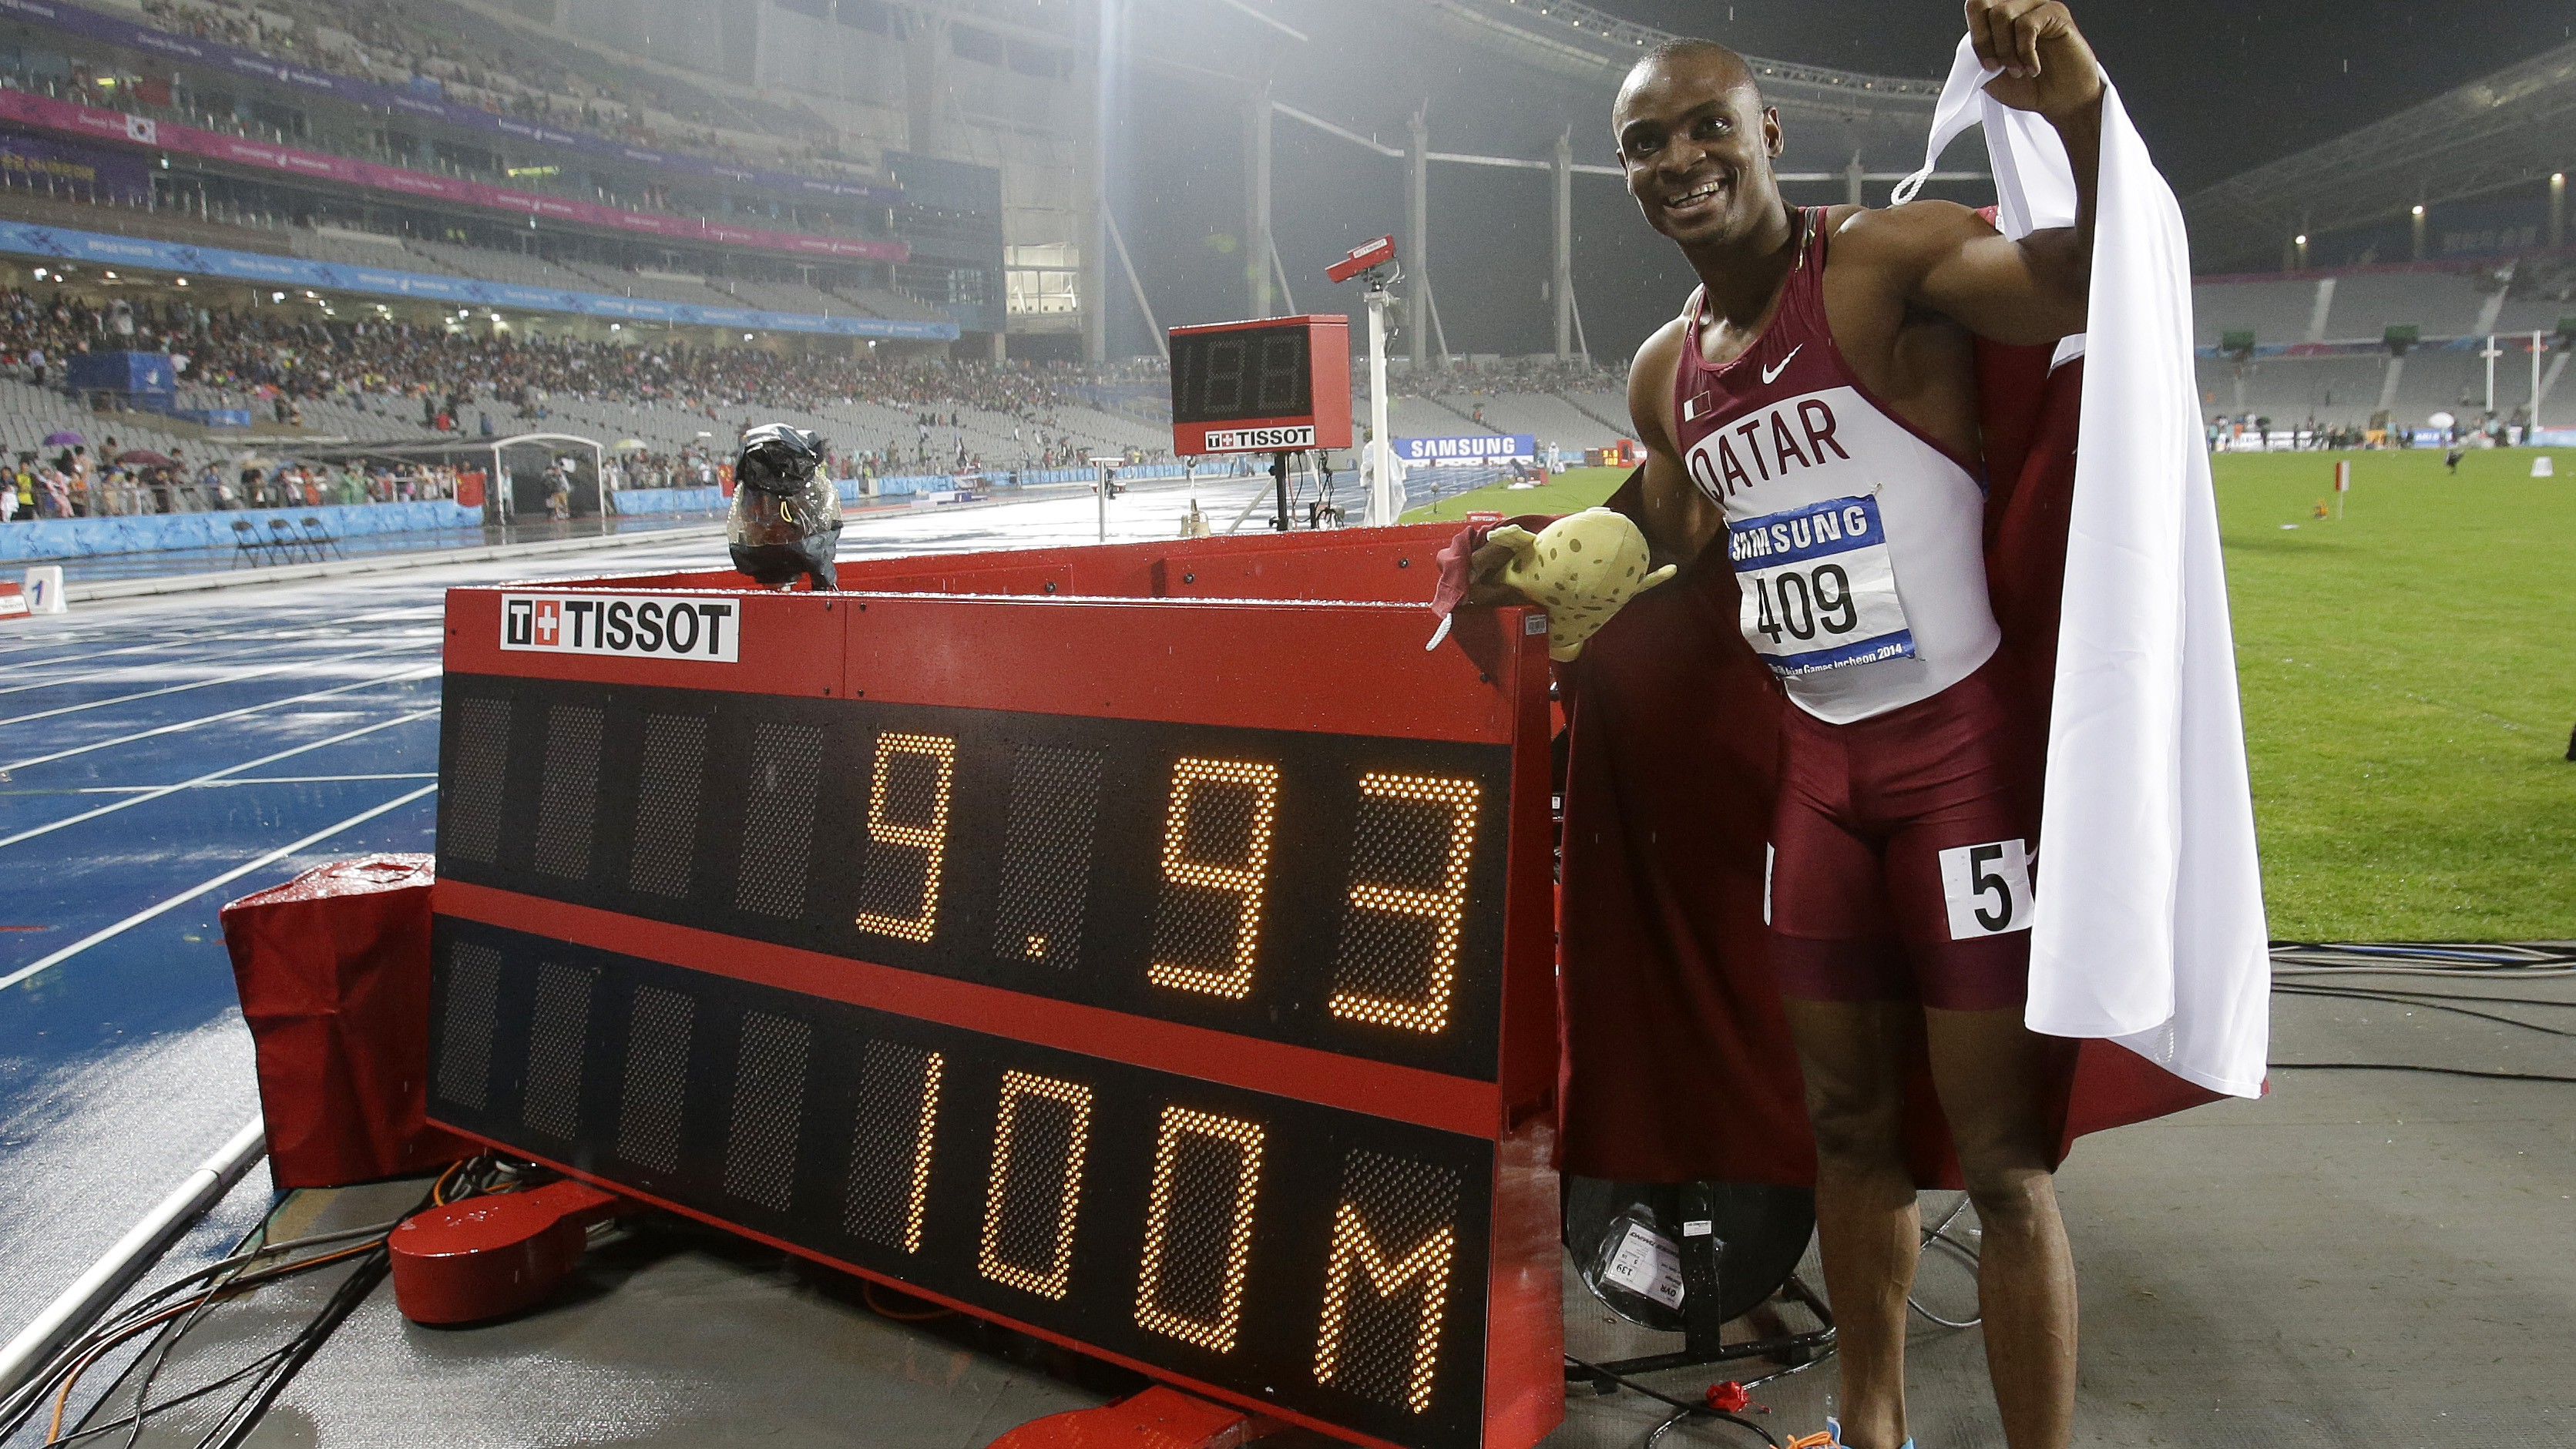 Qatar's Femi Ogunode stands by his race time after setting a games record in winning the men's 100 meters final at the 17th Asian Games in Incheon, South Korea, Sunday, Sept. 28, 2014. (AP Photo/Lee Jin-man)